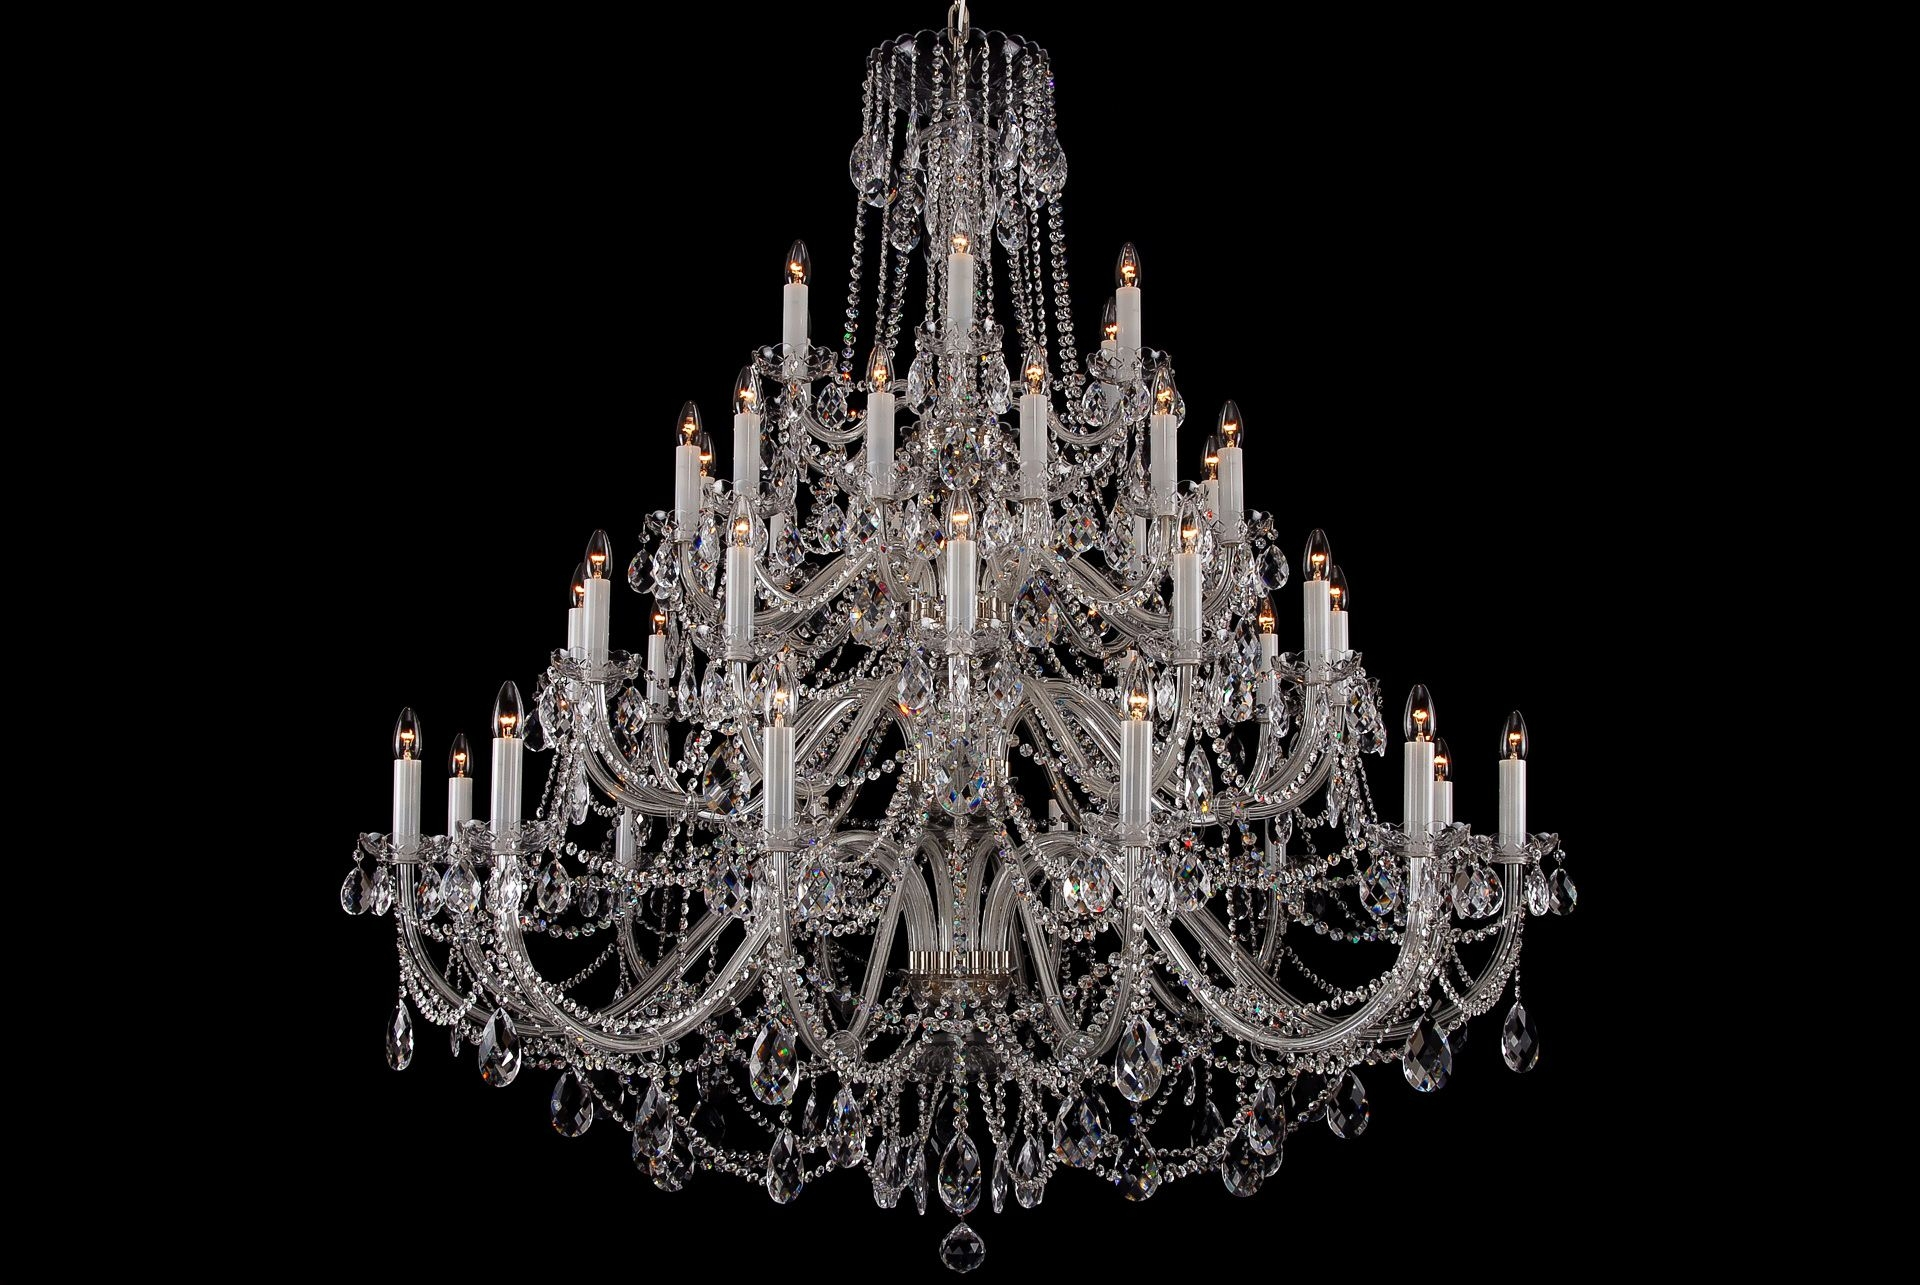 The Largest Clear Crystal Chandelier With Silver Coloured Metal In Huge Crystal Chandelier (View 1 of 15)